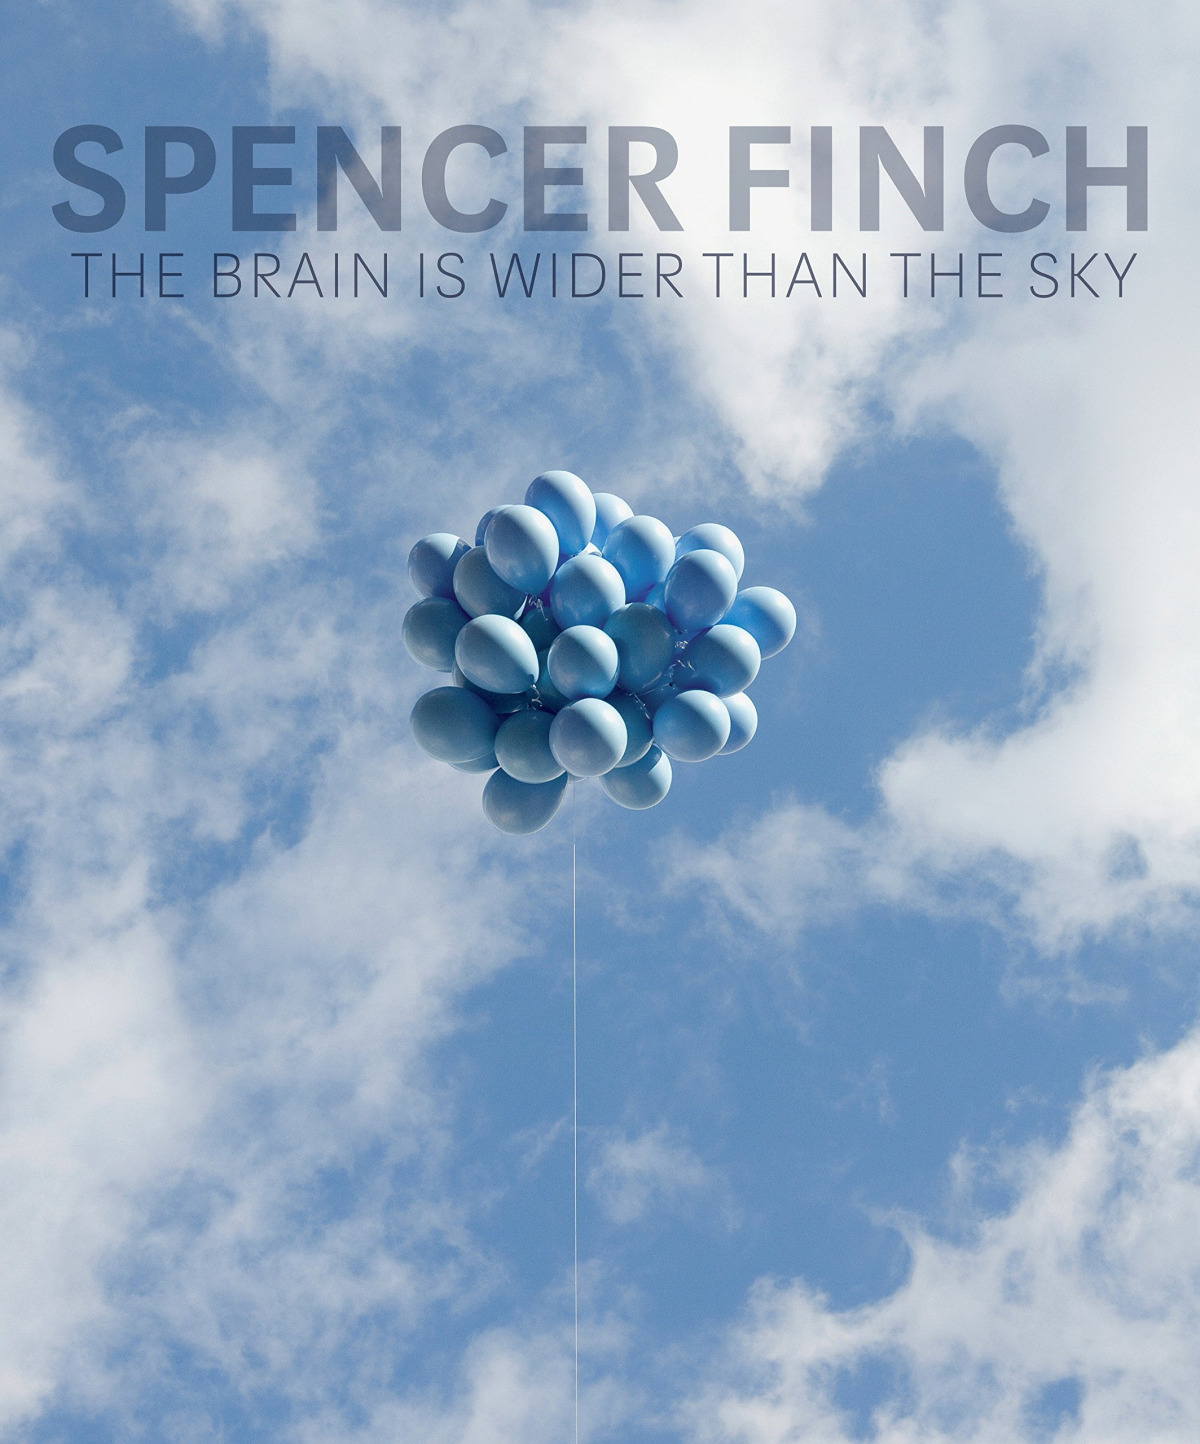 SPENCER FINCH:THE BRAIN IS WILDER THAN THE SKY